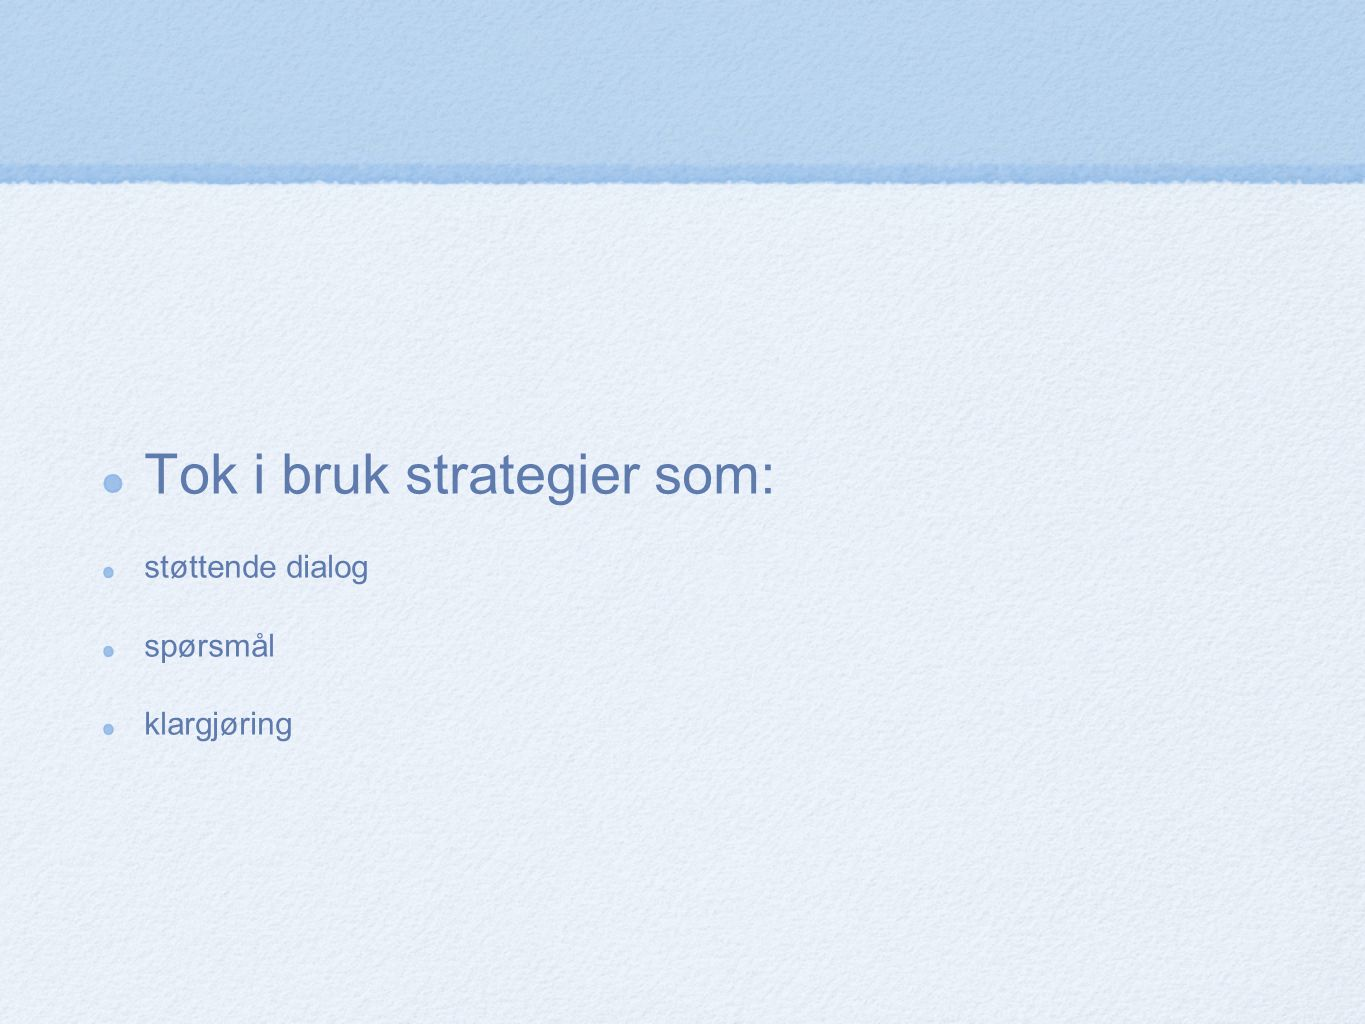 Tok i bruk strategier som: